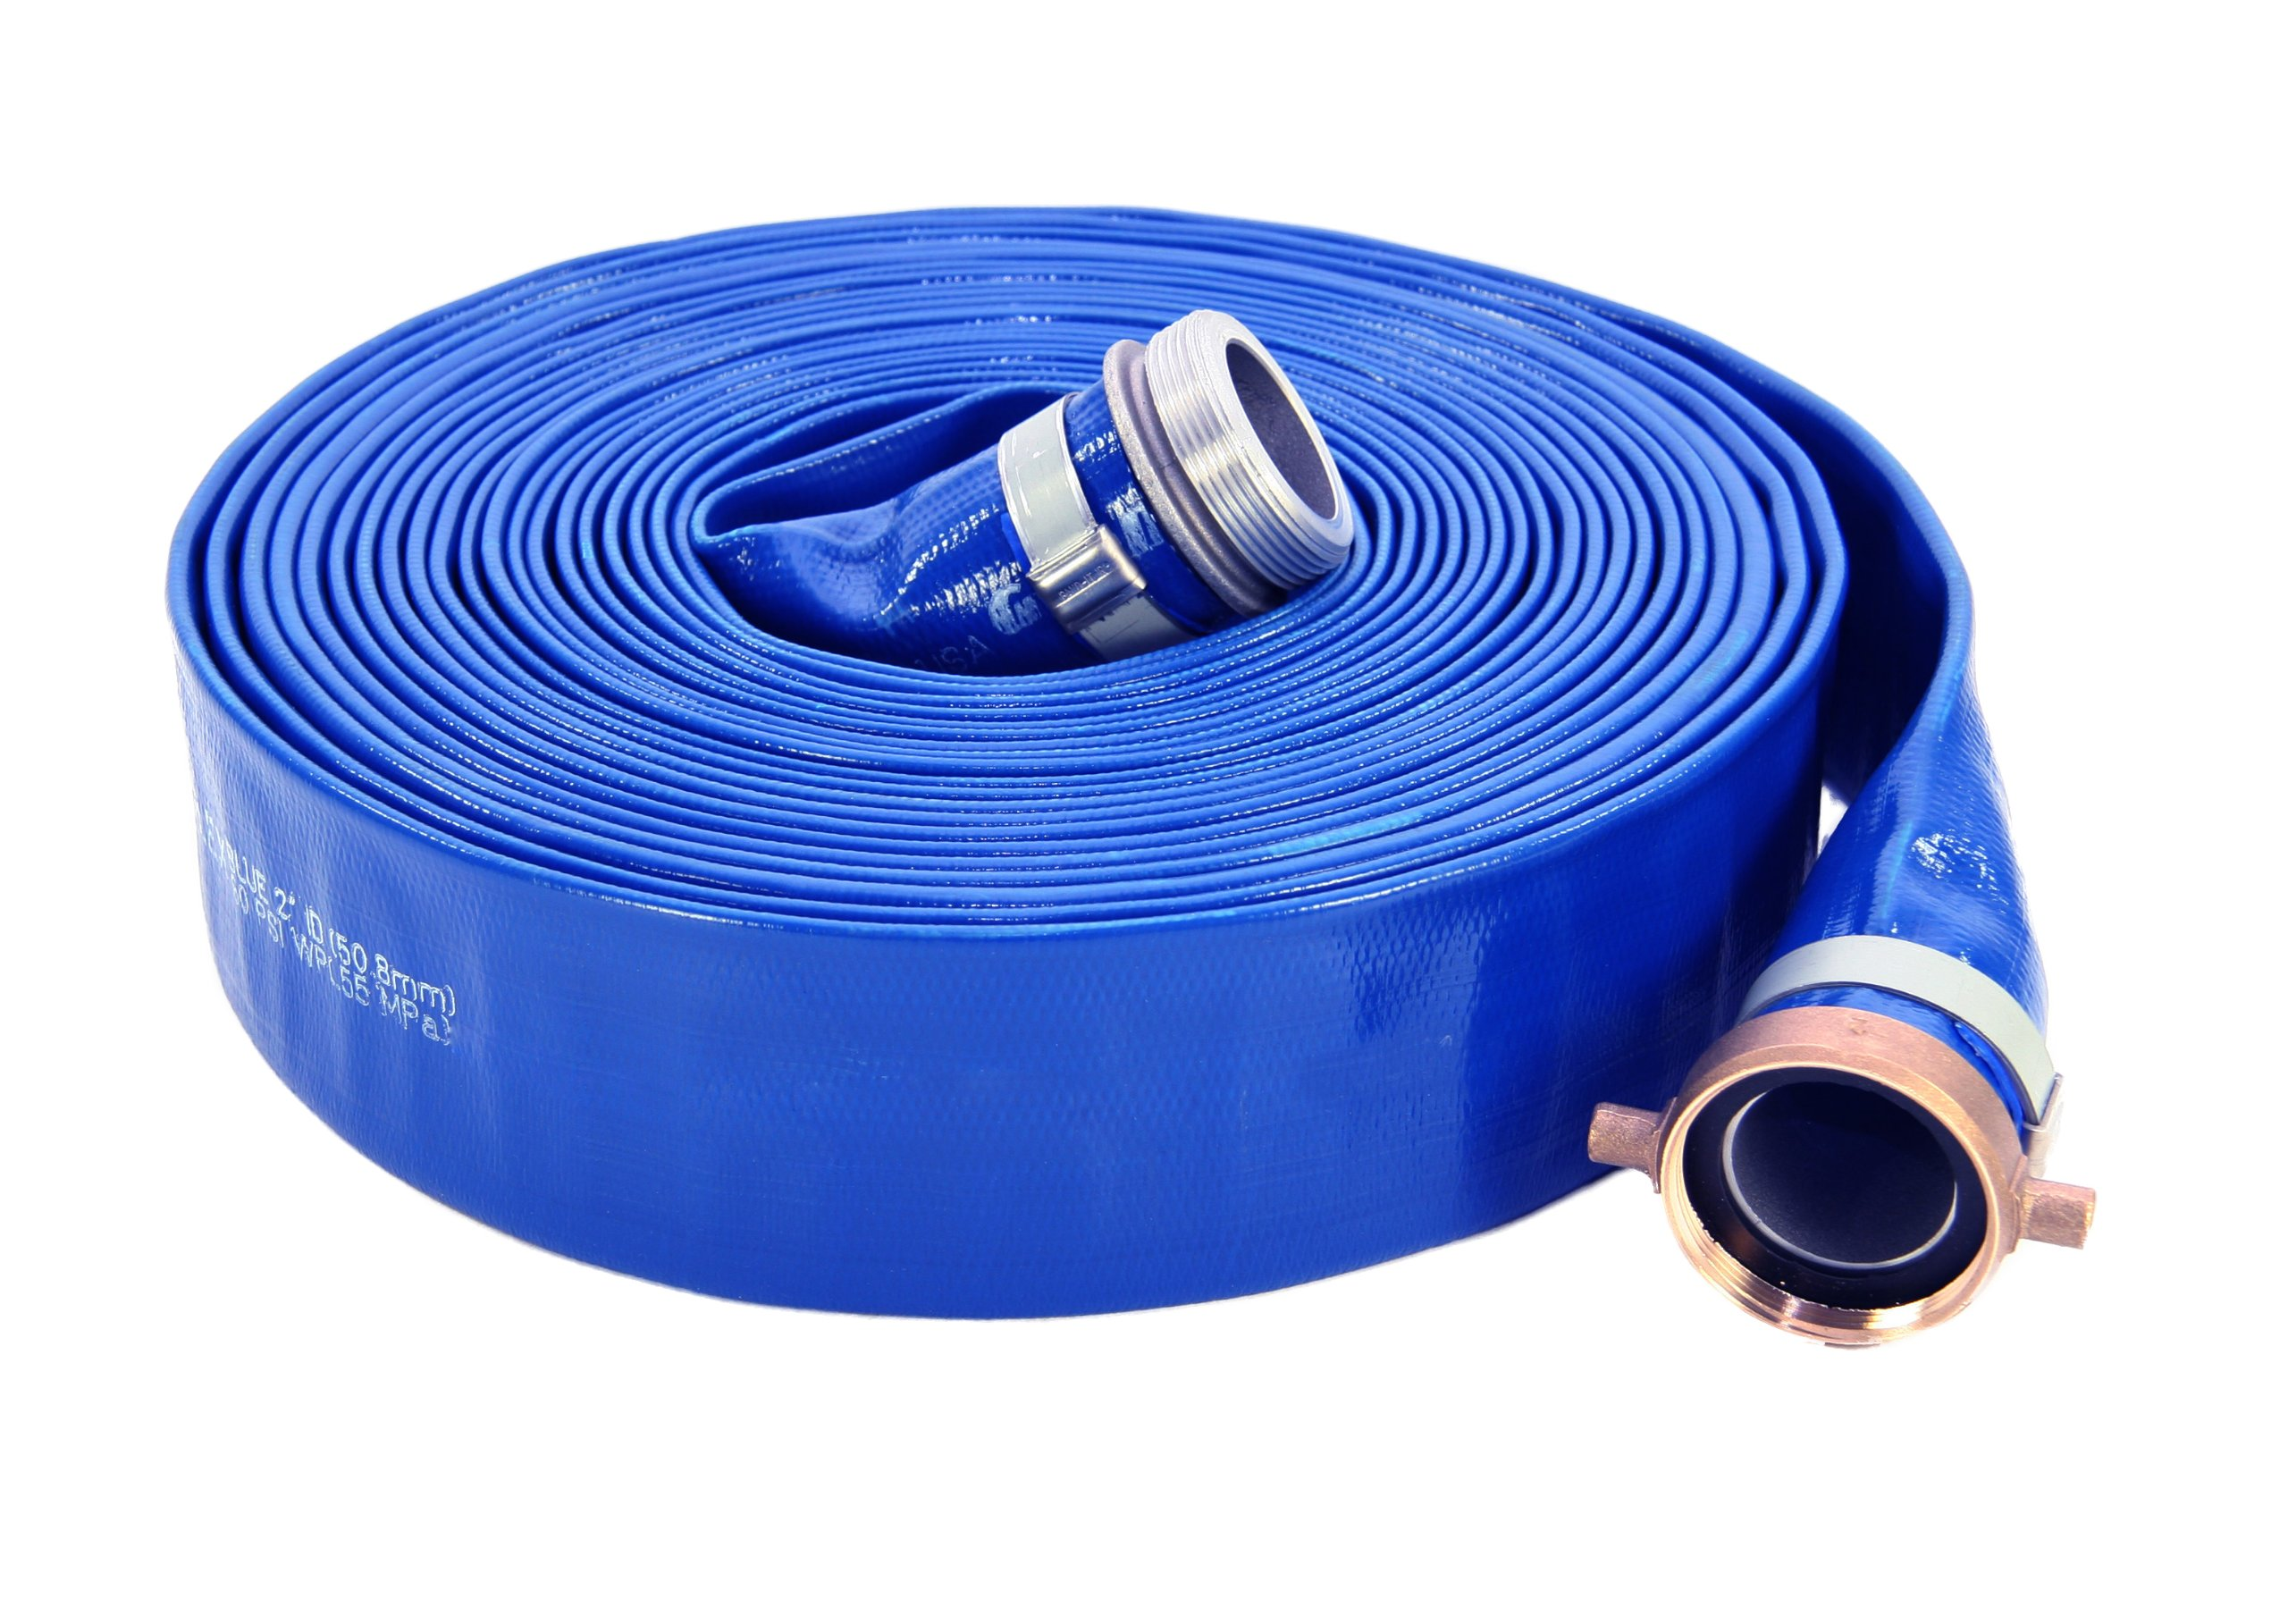 Abbott Rubber PVC Discharge Hose Assembly, Blue, 2'' Male X Female NPSM, 65 psi Max Pressure, 50' Length, 2'' ID